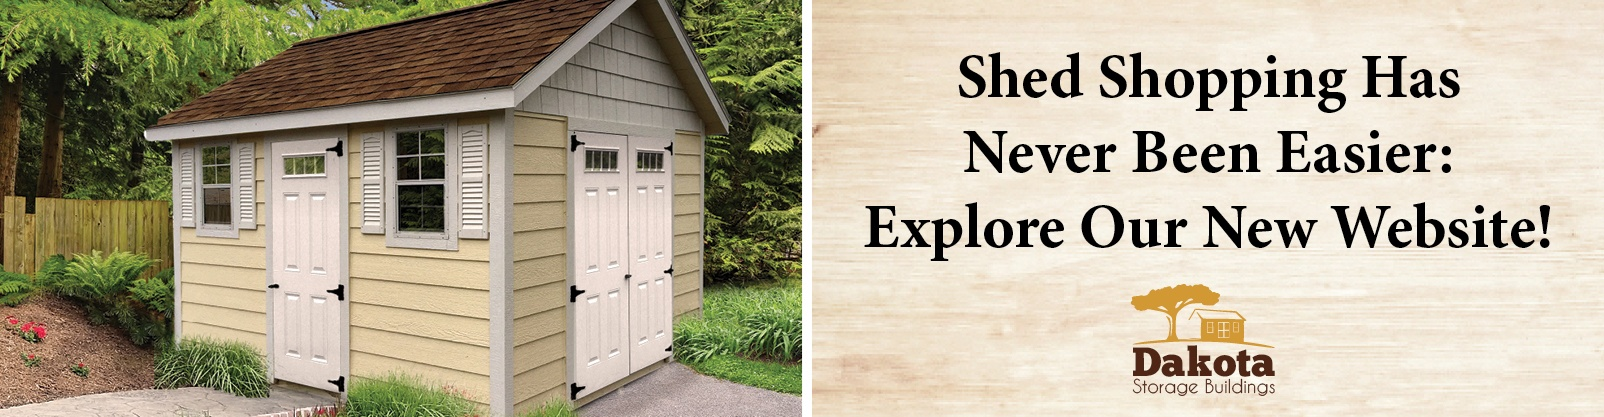 Shed Shopping Has Never Been Easier: Explore Our New Website